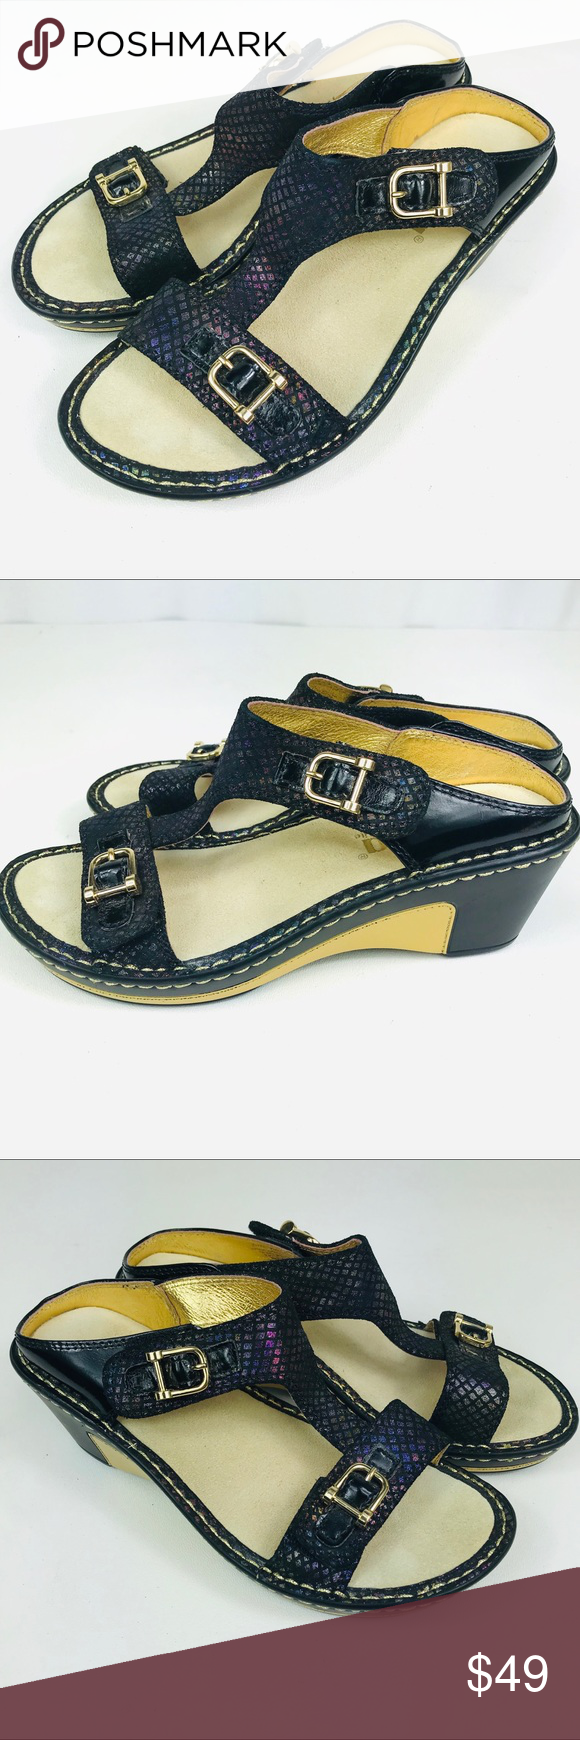 Leather sandal, size 35